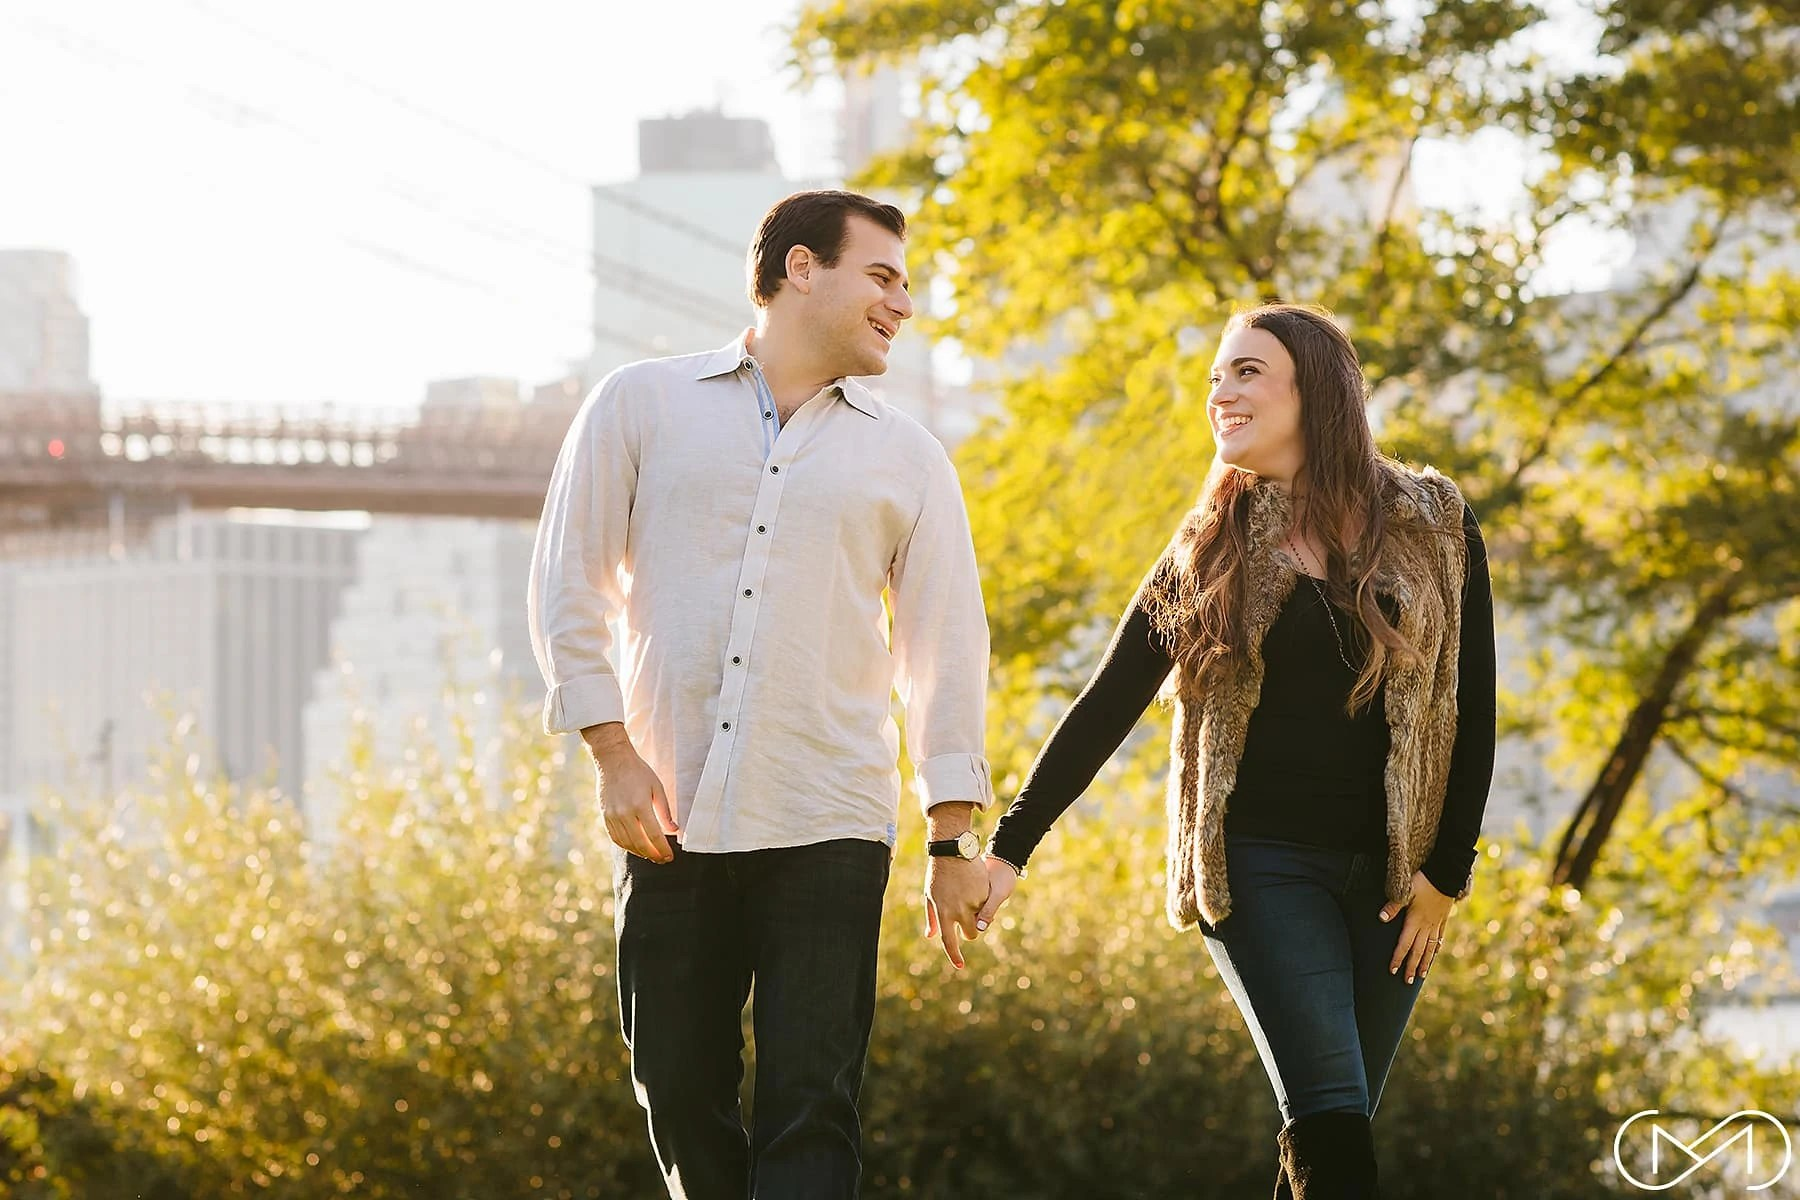 DUMBO Brooklyn Bridge Park Engagement